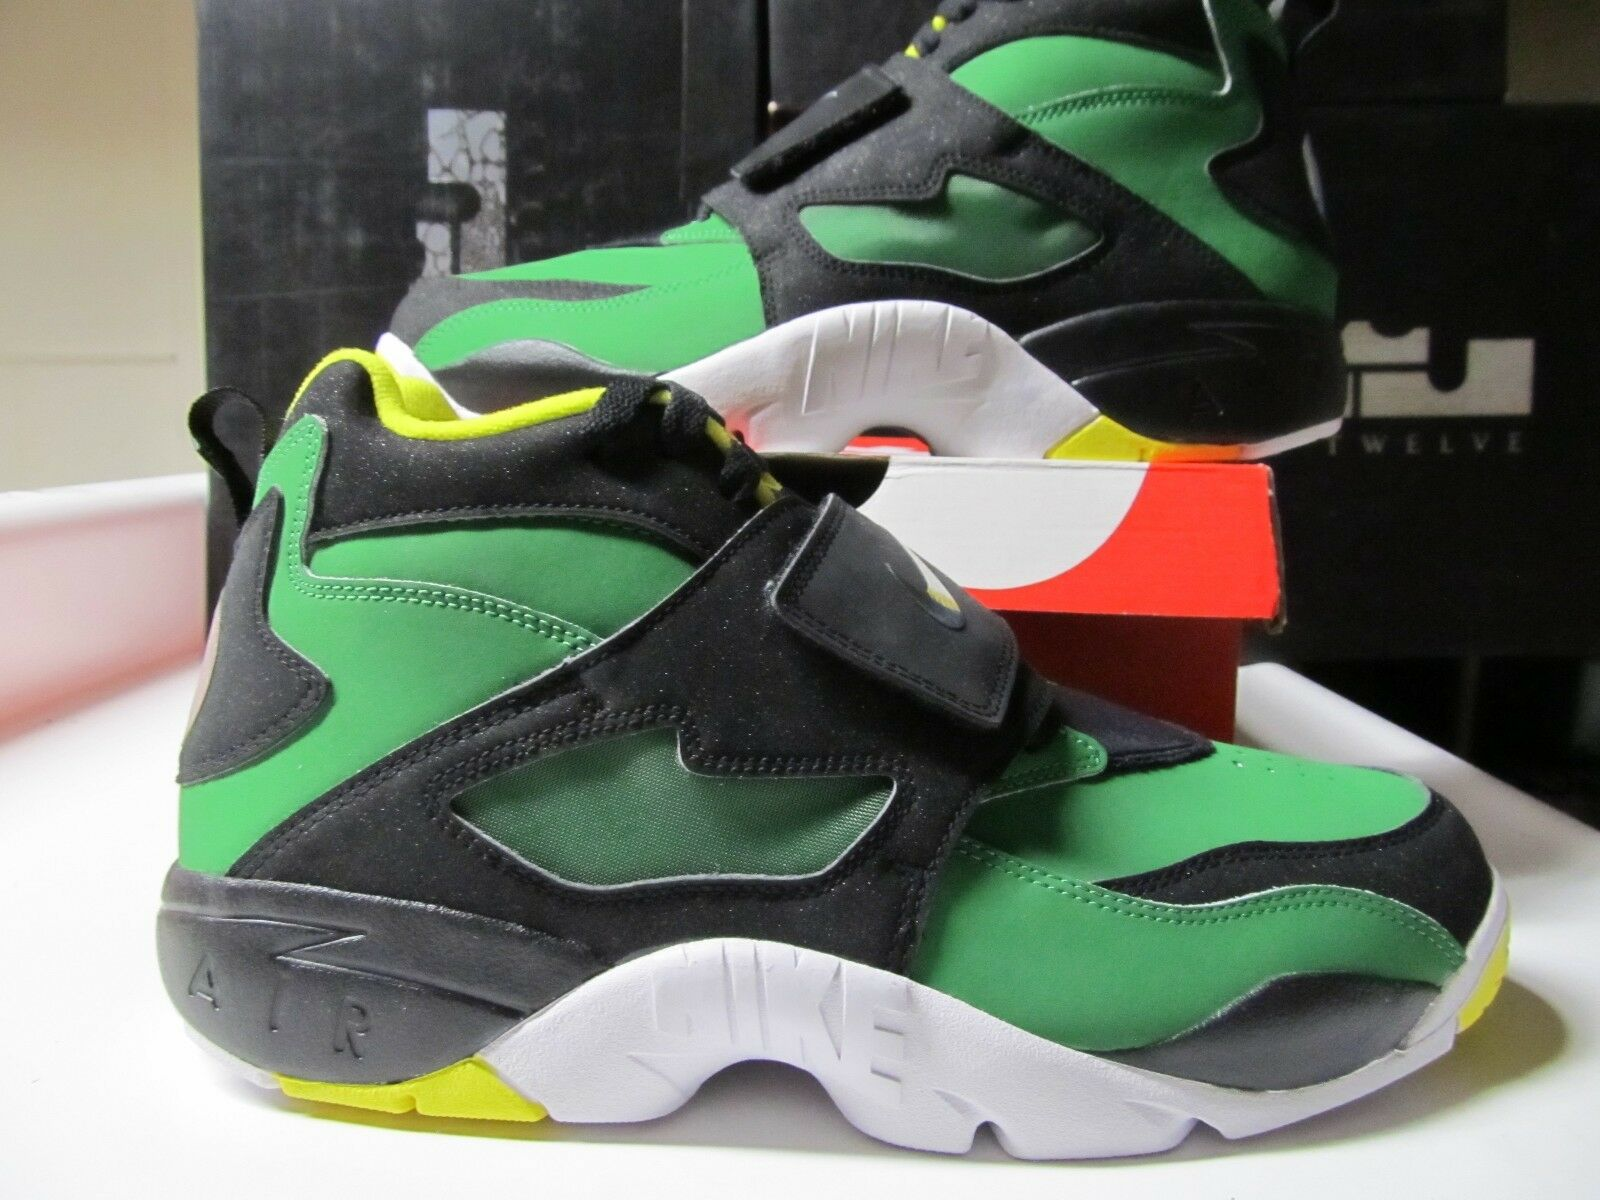 Nike Air Diamond Turf OREGON DUCKS Blck Green Yellow Yellow Yellow 10 309434 302 deion sanders 645670